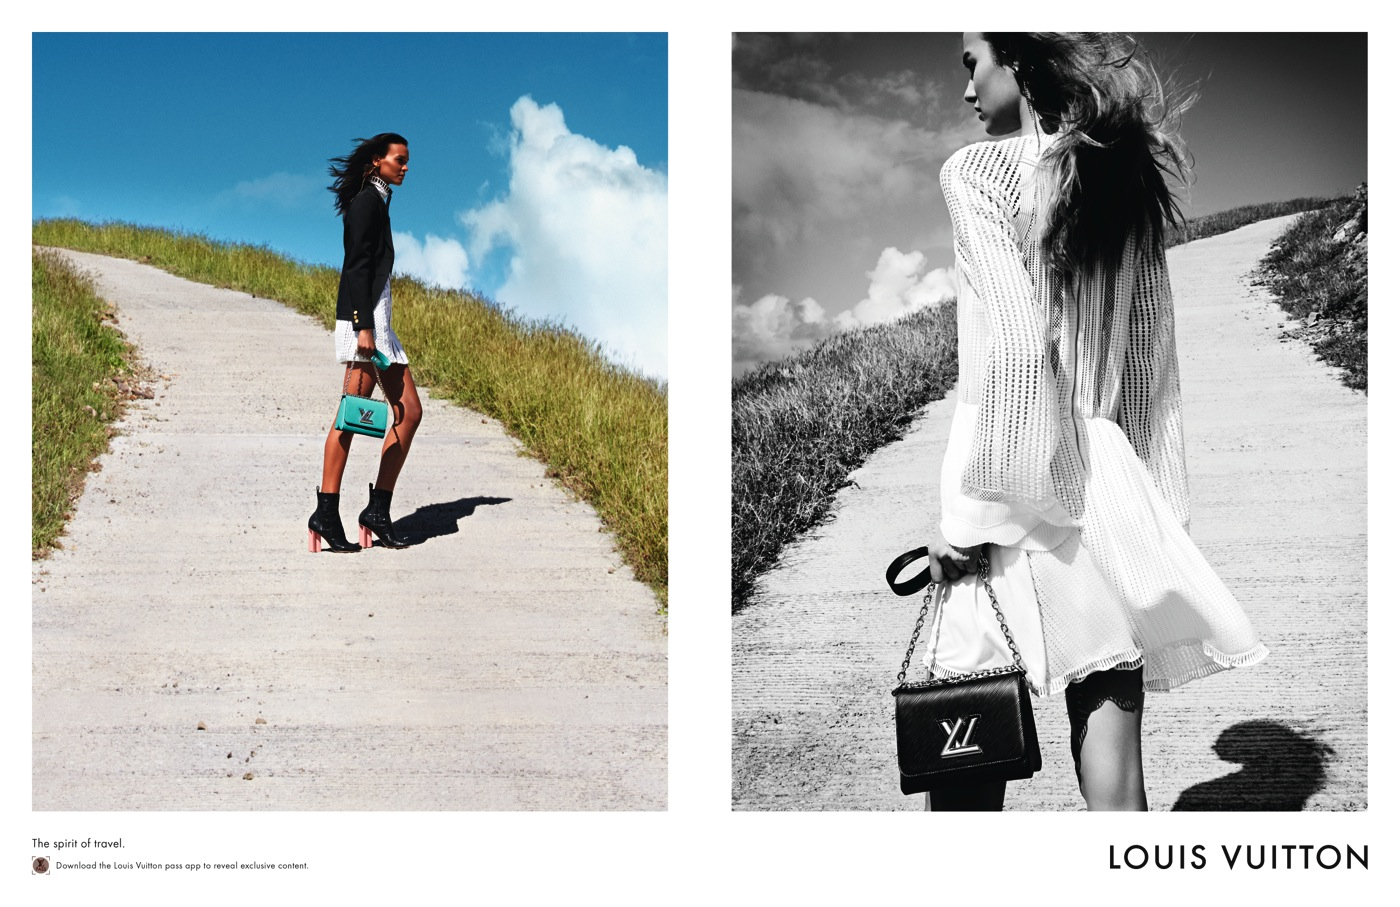 Louis Vuitton Spirit of Travel Ad Campaign by Patrick Demarchelier 3